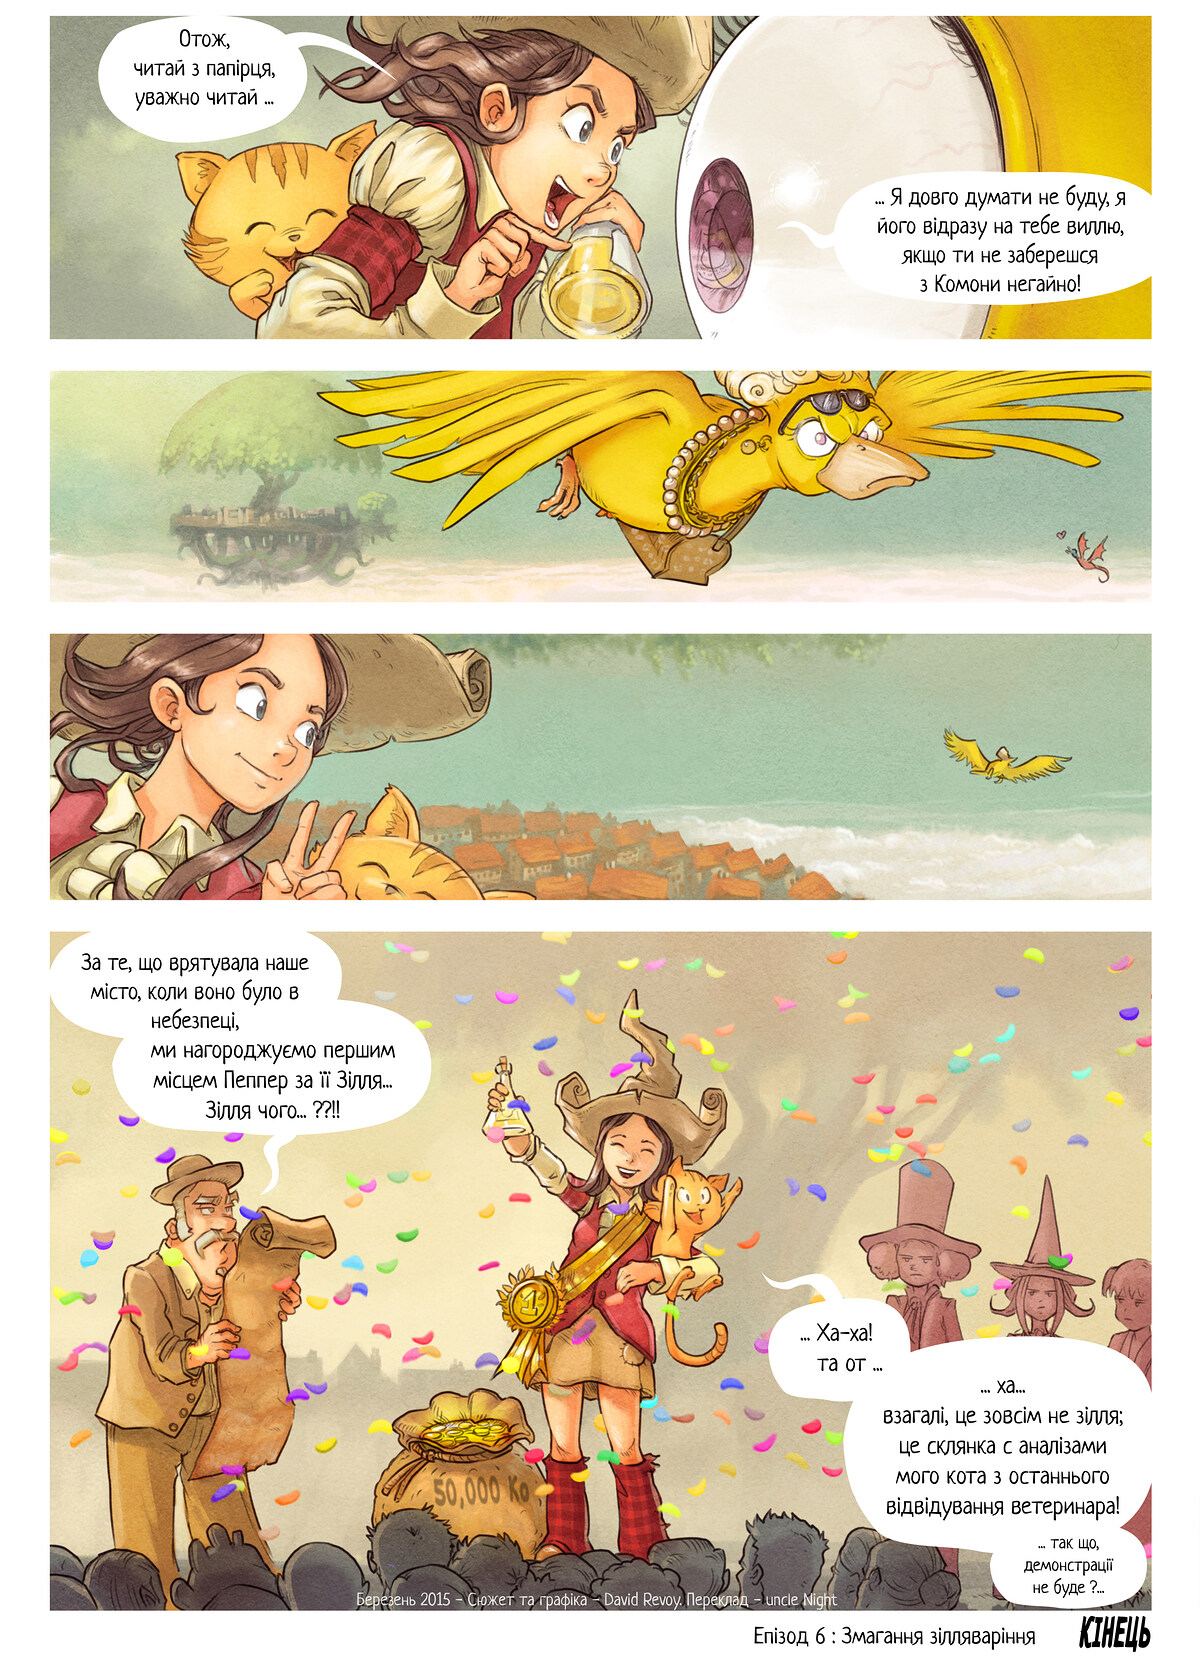 A webcomic page of Pepper&Carrot, епізод 6 [uk], стор. 9